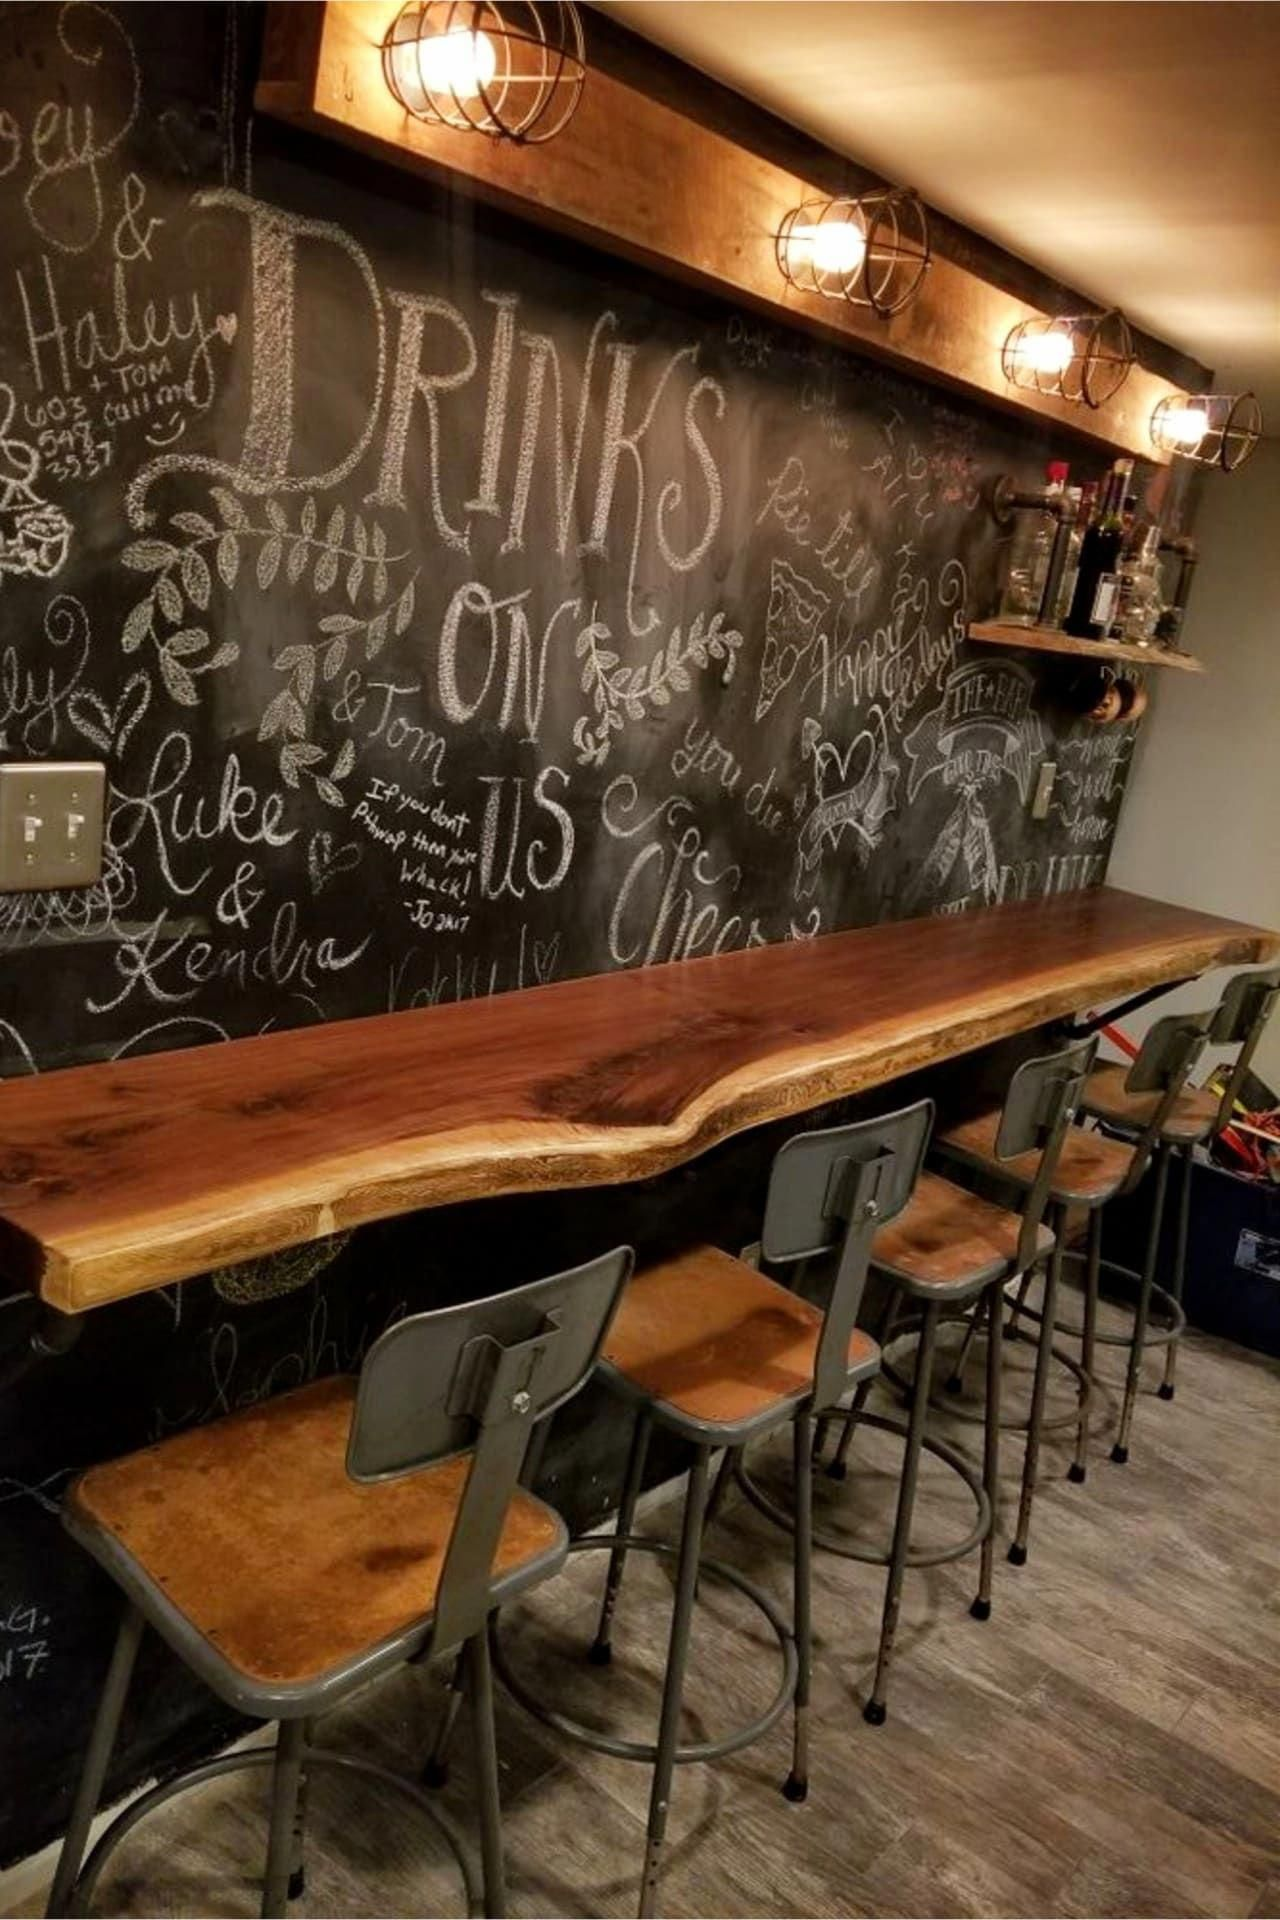 Man Cave Ideas Basement Or Garage Man Cave Ideas On A Budget Man Cave Bar Ideas Diy Basement Bar Ideas Ba Man Cave Room Man Cave Garage Man Cave Basement